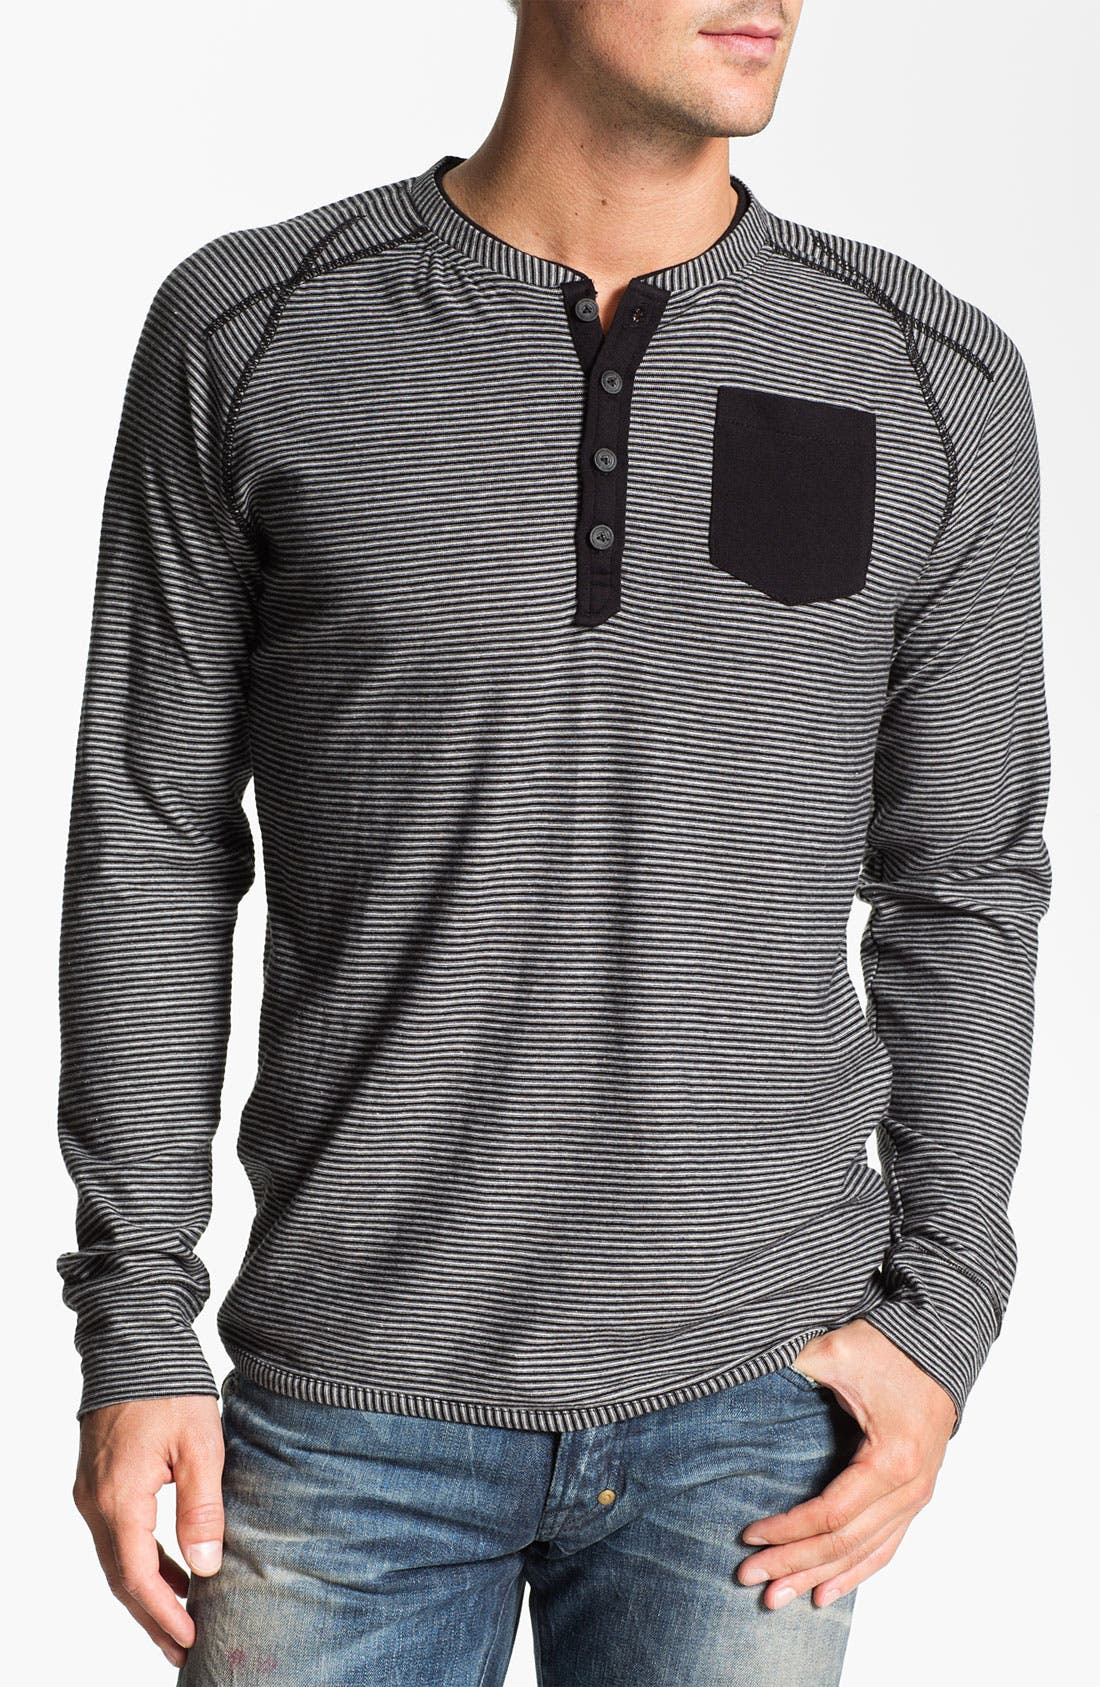 Alternate Image 1 Selected - J.C. Rags Stripe Raglan Sleeve Henley